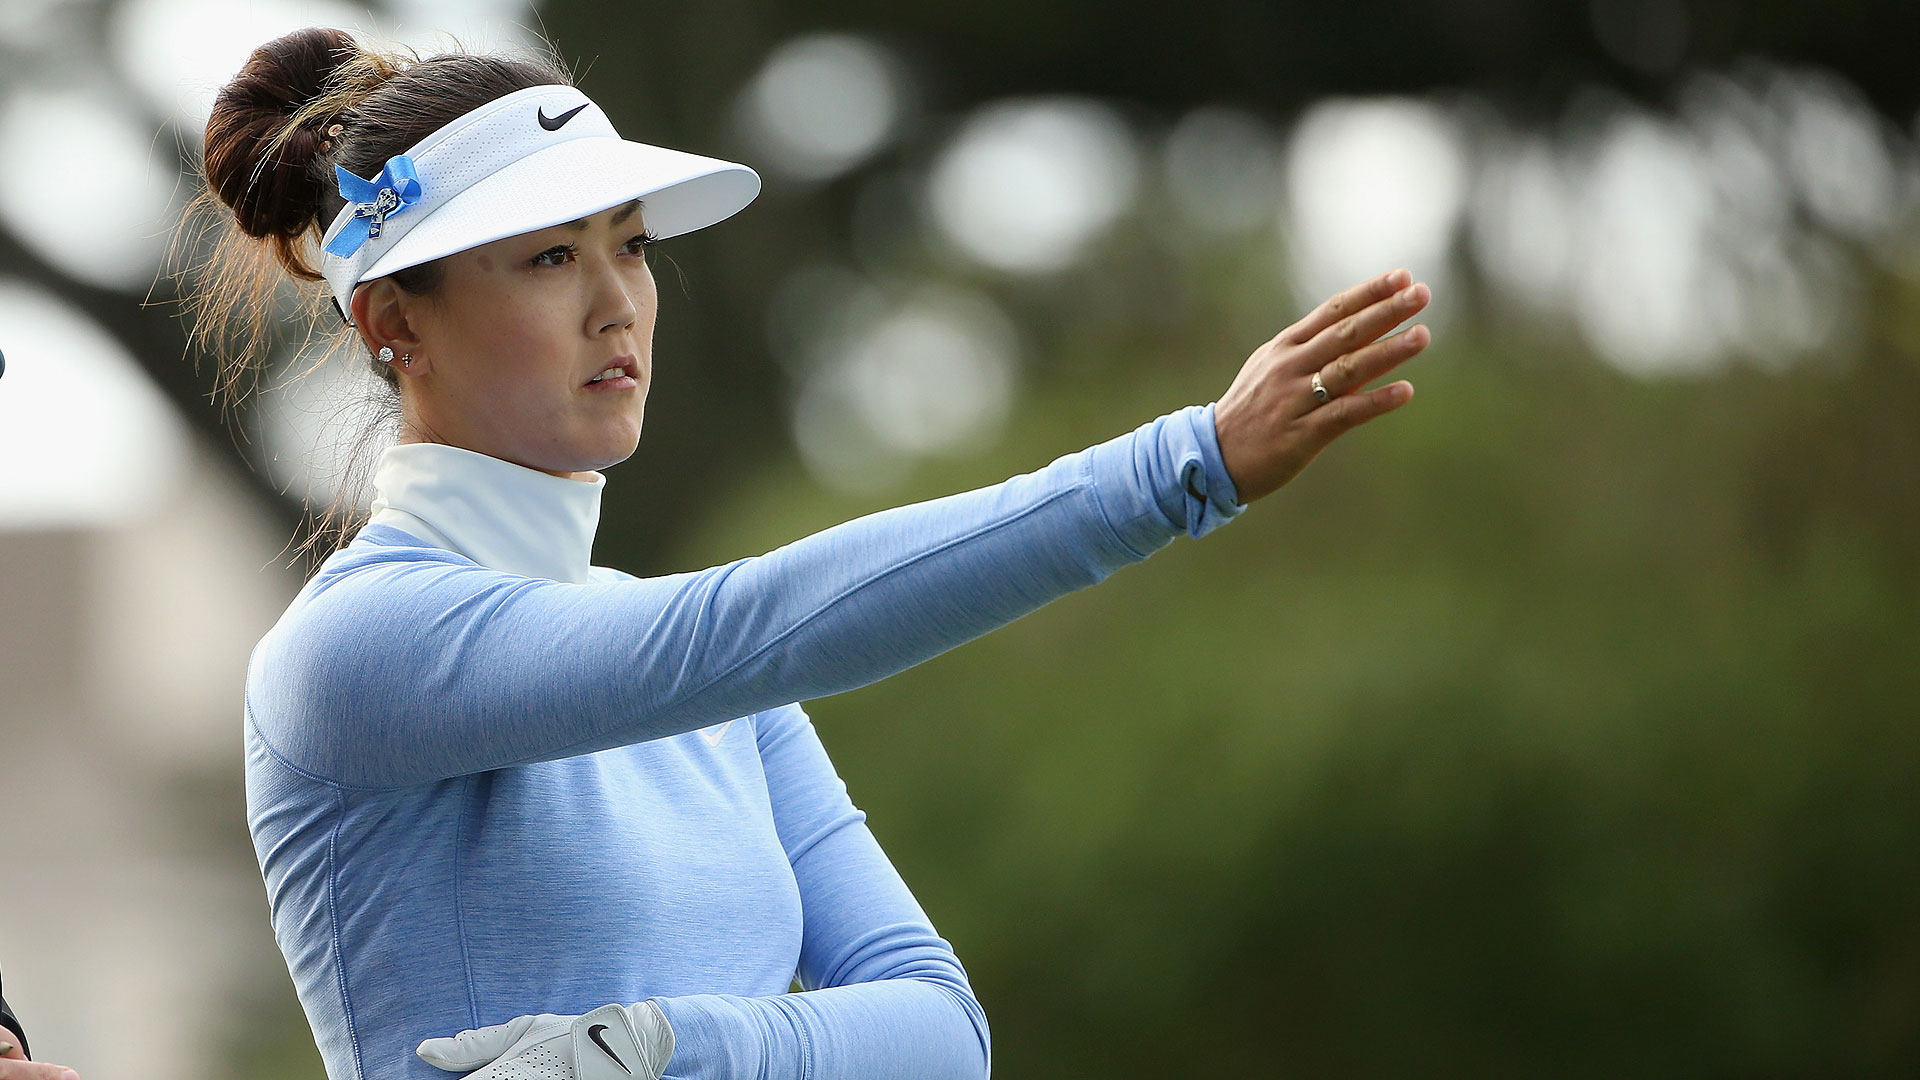 Michelle Wie Practicing Again After Wrist Surgery